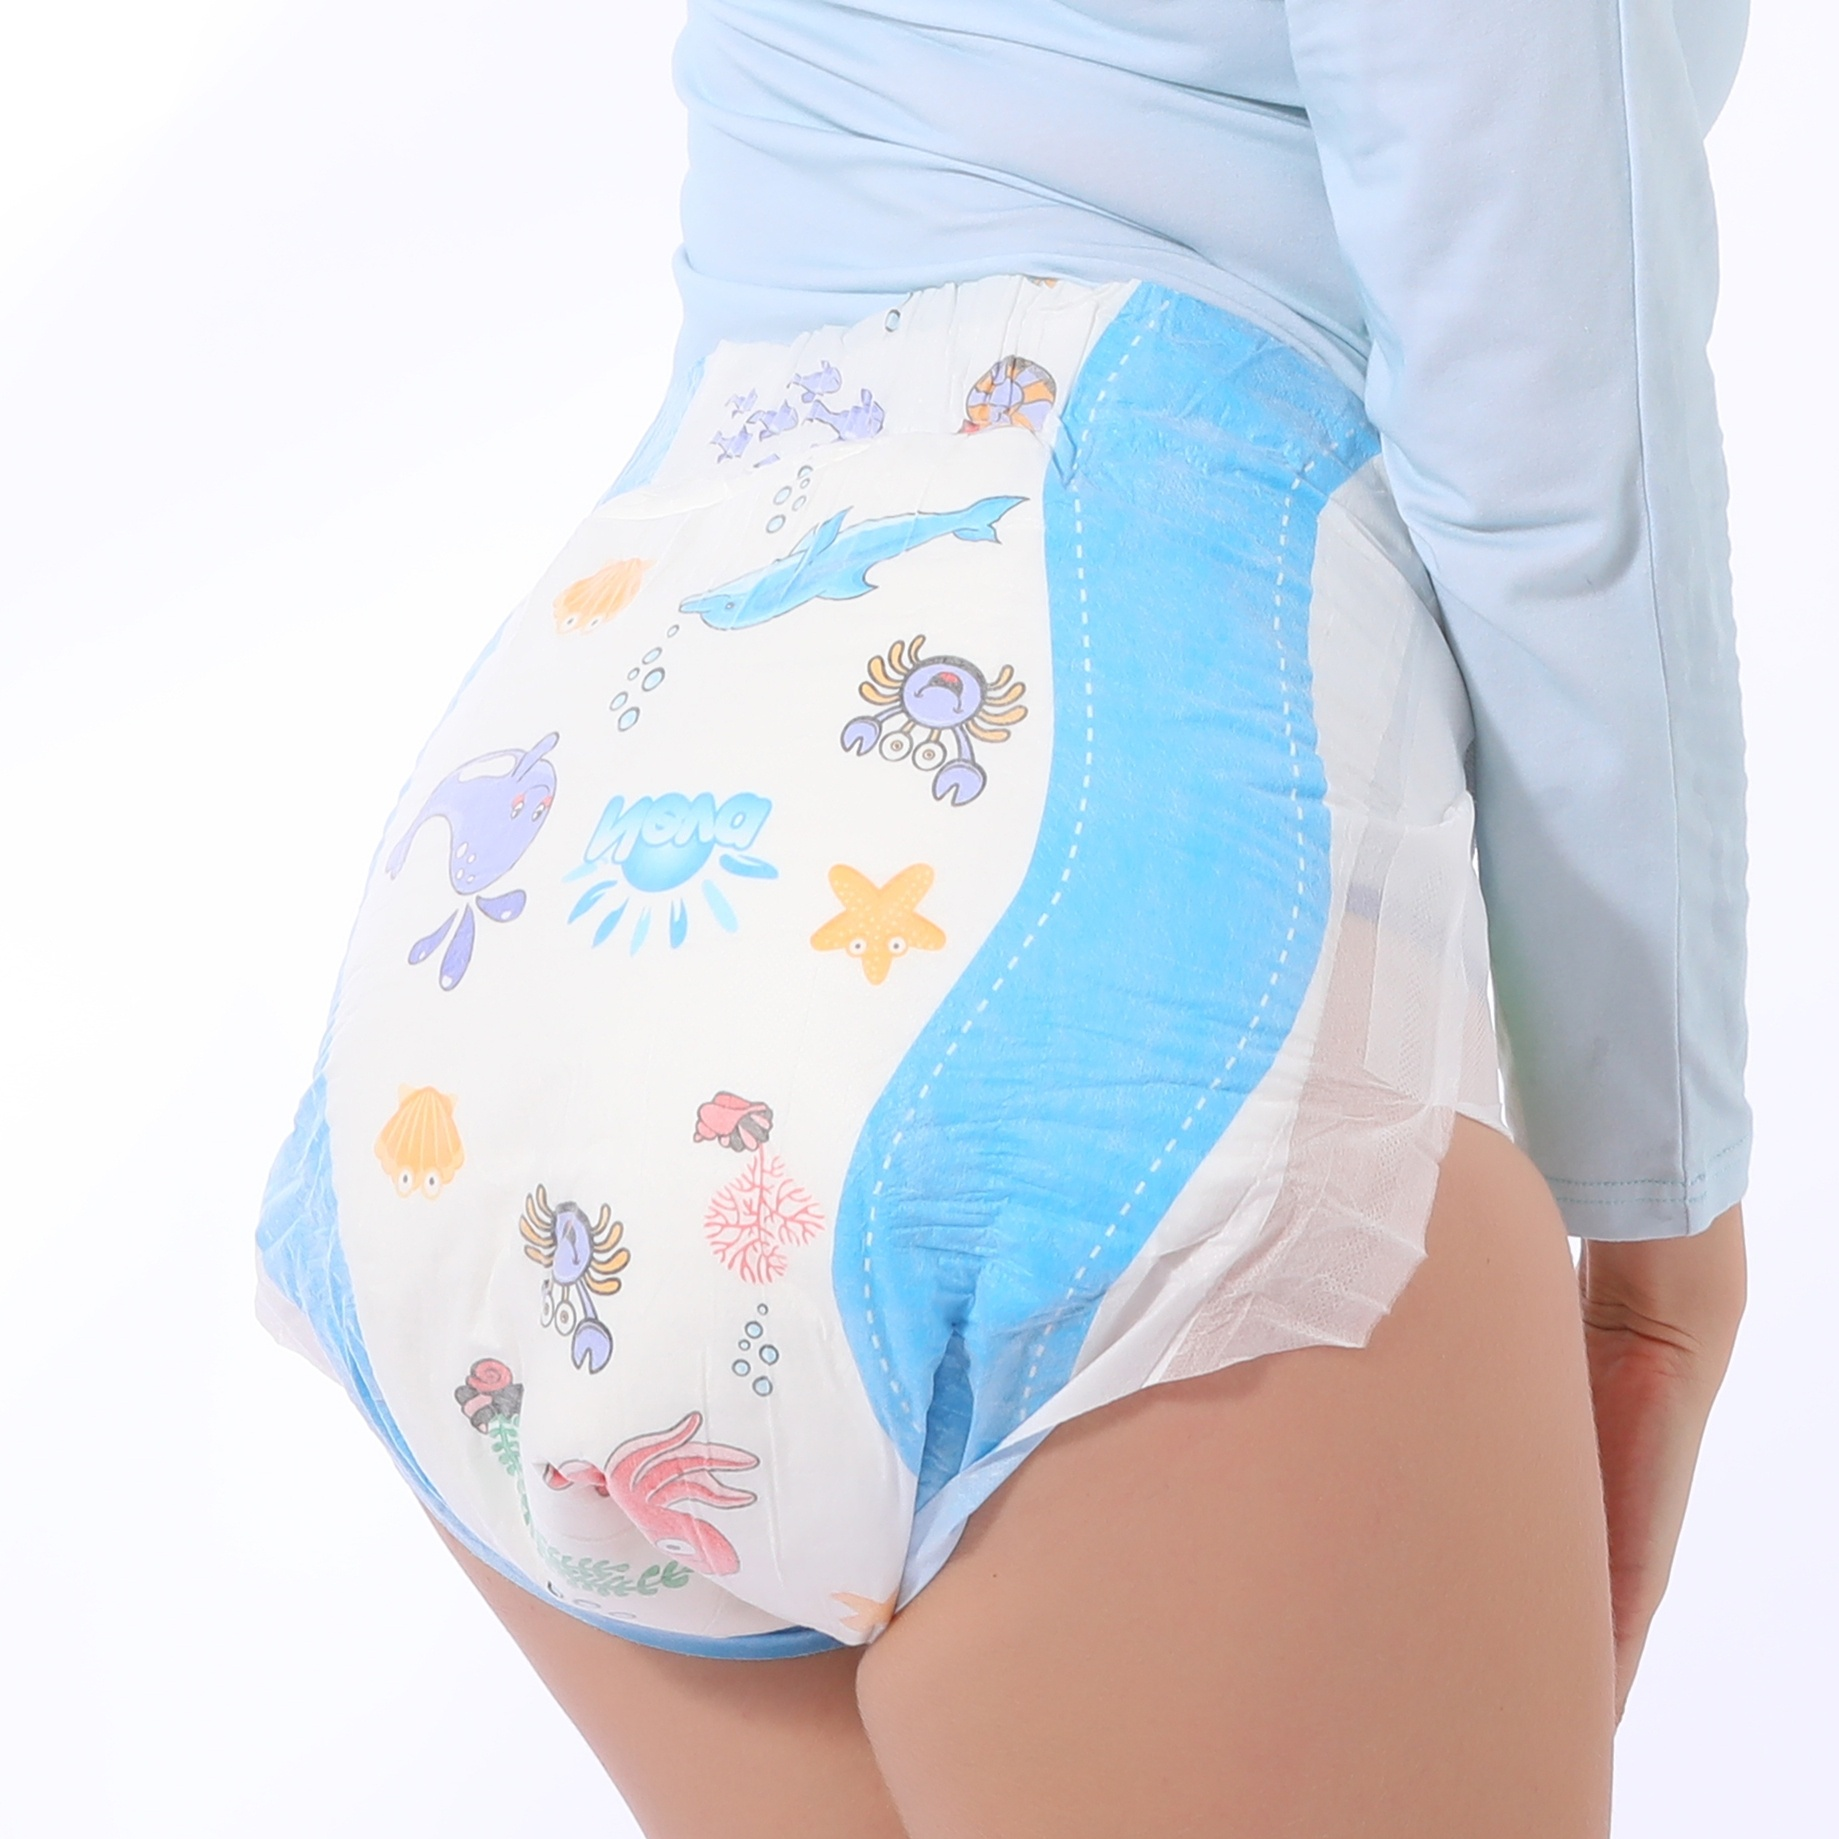 DDLG 4000ml Disable Diaper Nappie Soft Dinosaur Ocean Printed Paper Large Size Diaper Pant Adult ABDL Diapers 8pcs In A Packs